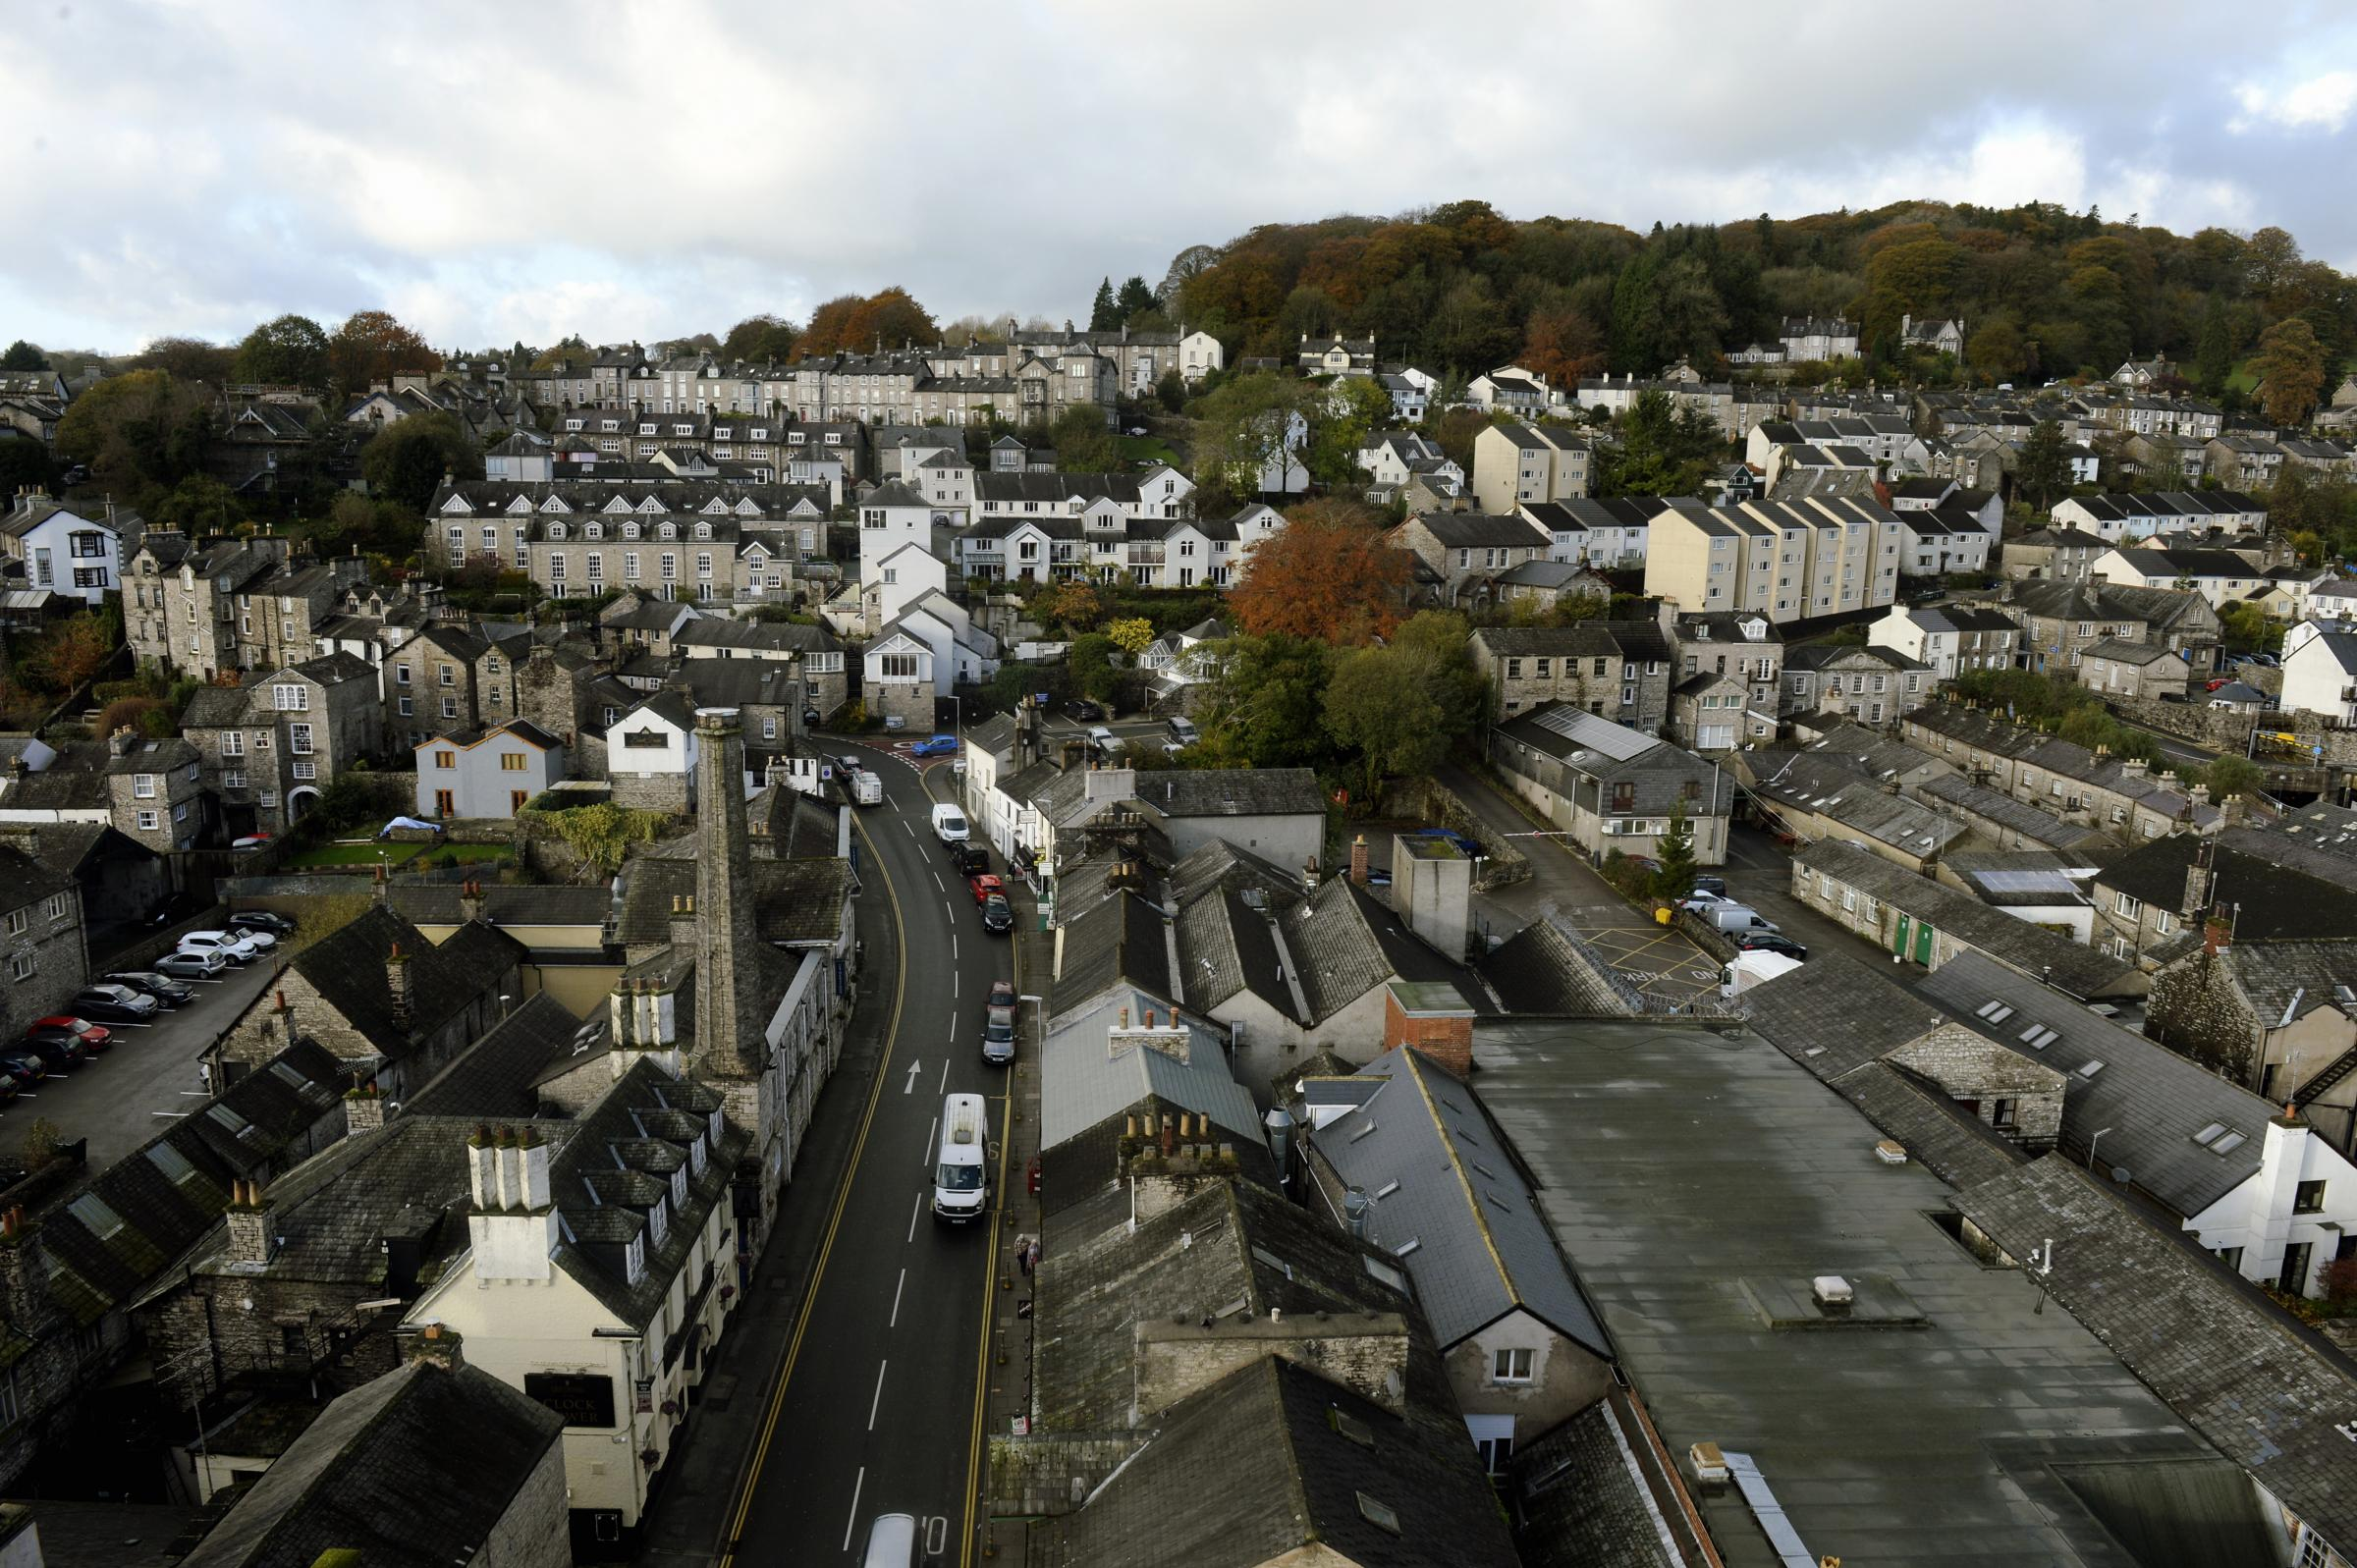 Work in progress on Kendal's town hall bell tower refurbishment project...Puictured: View from the bell tower...25/10/2017..JON GRANGER.